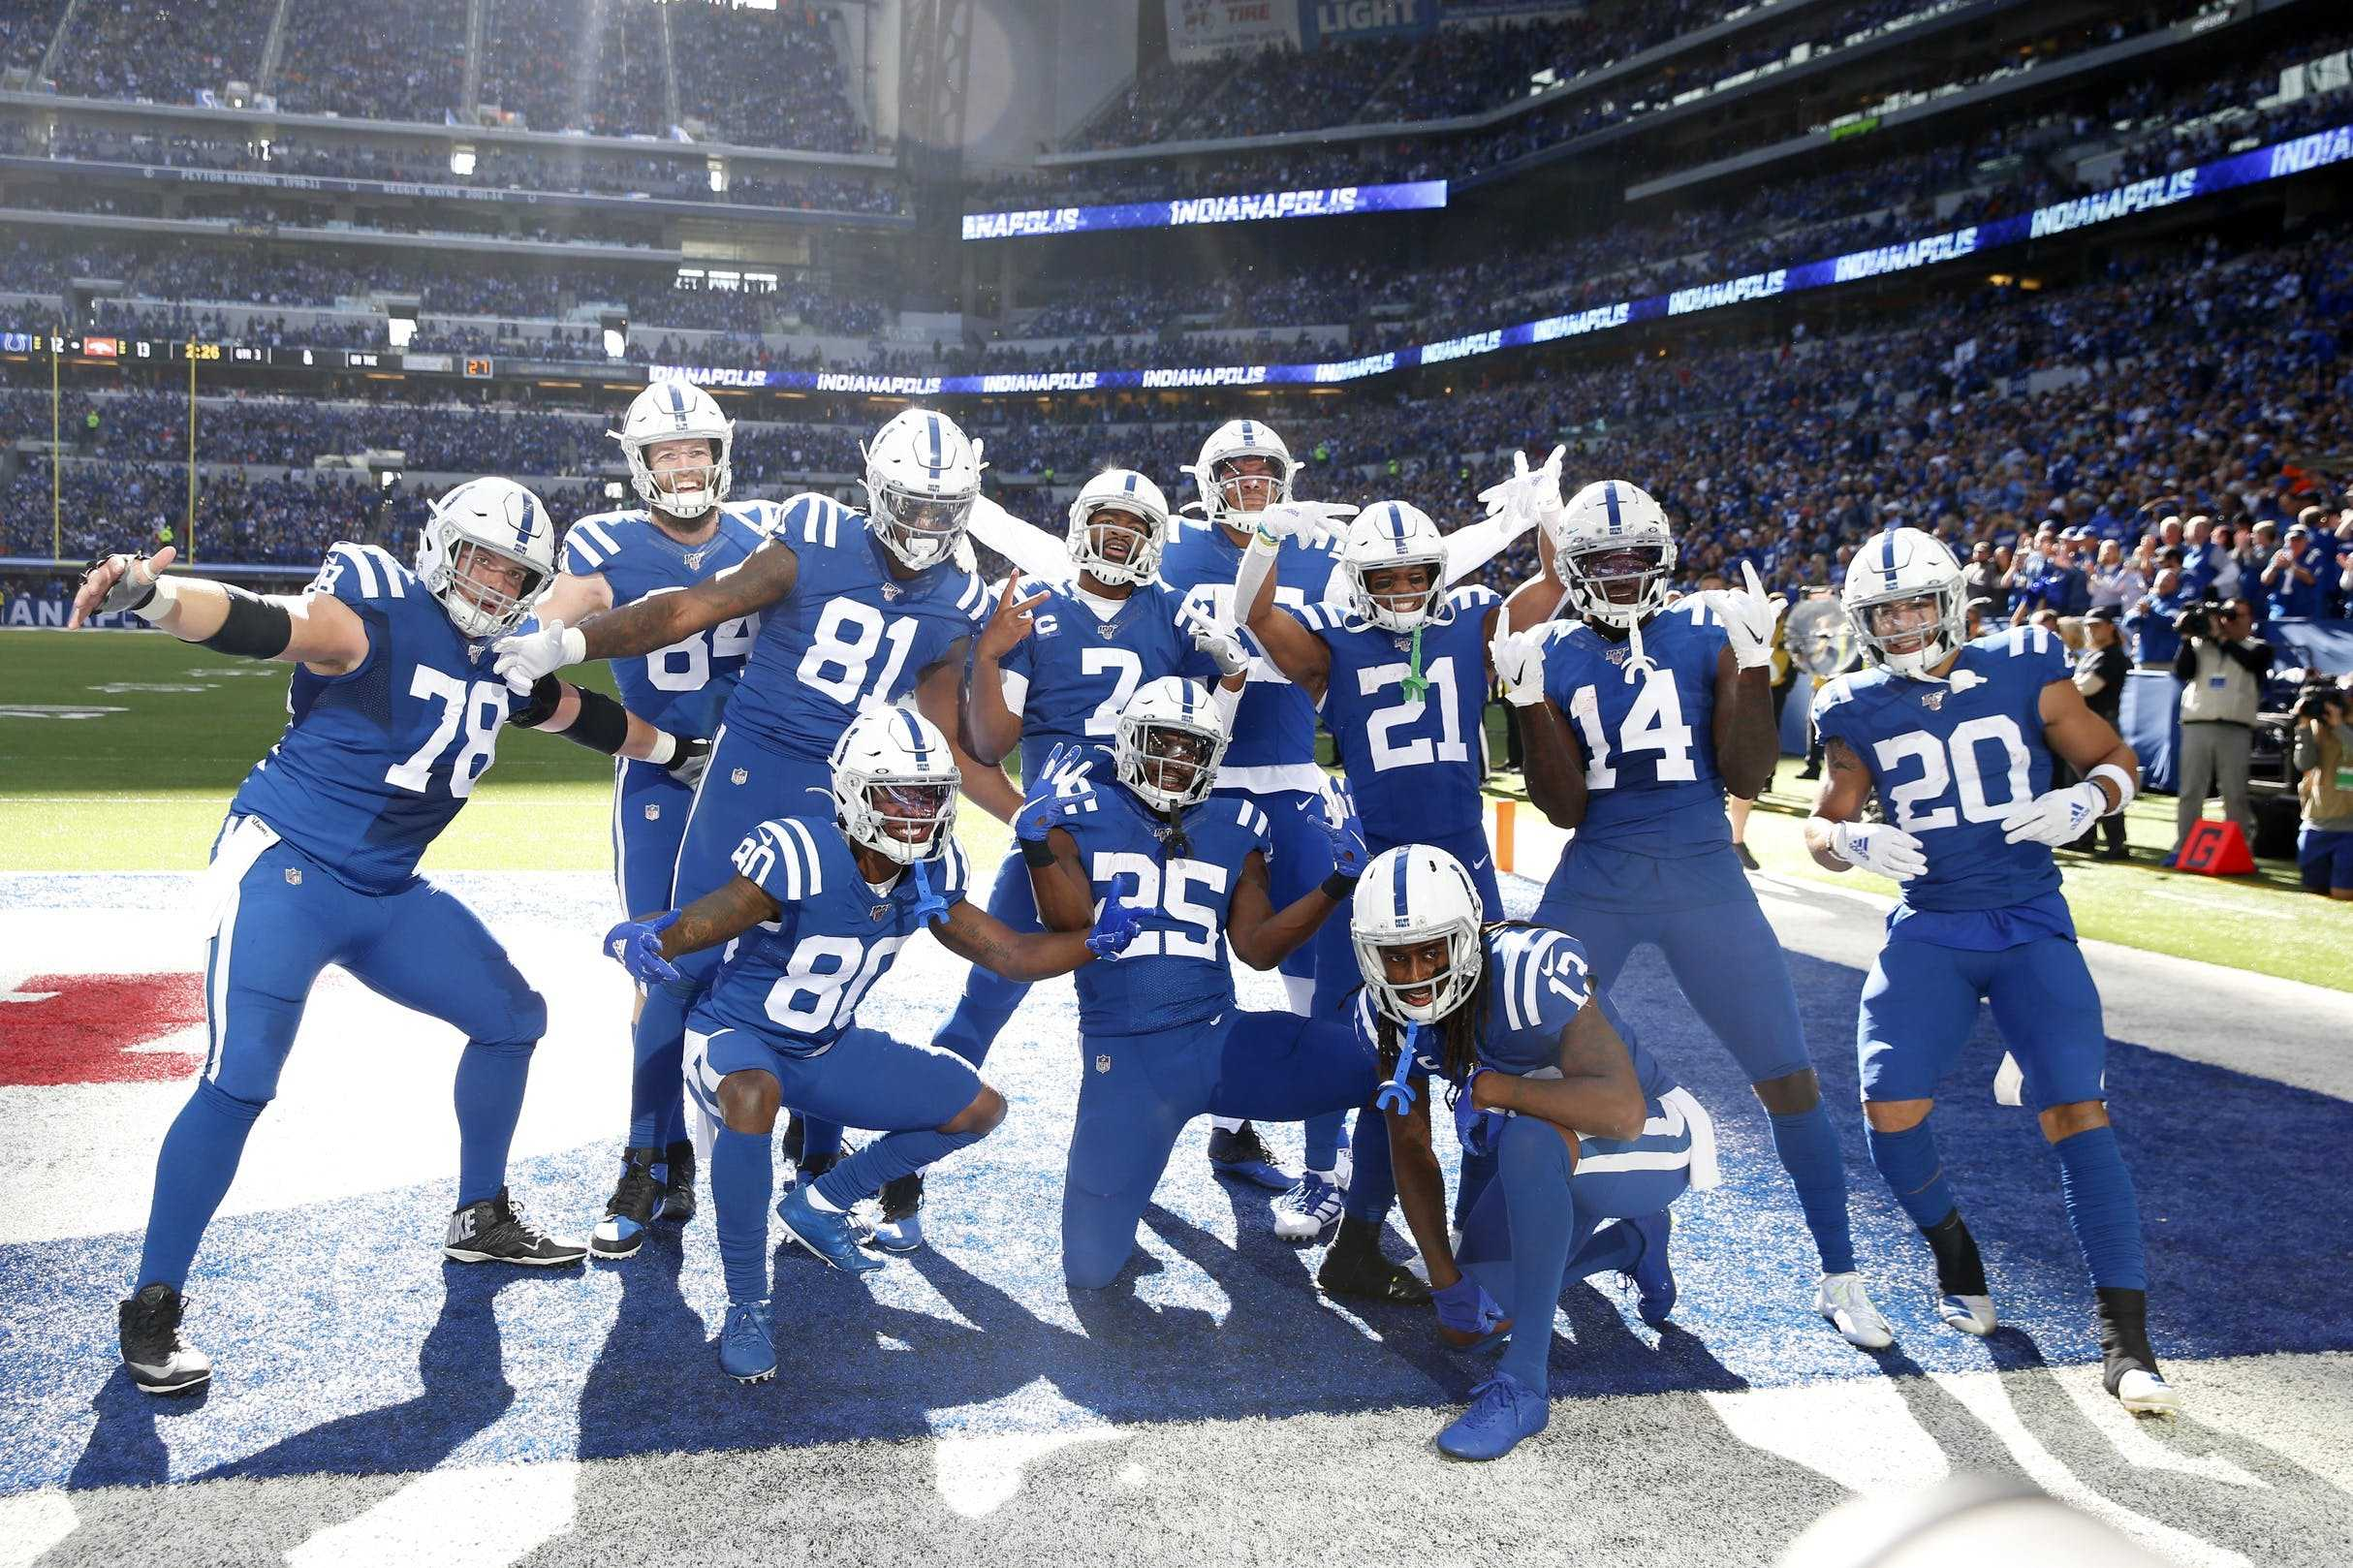 Could the Colts have a Curse?